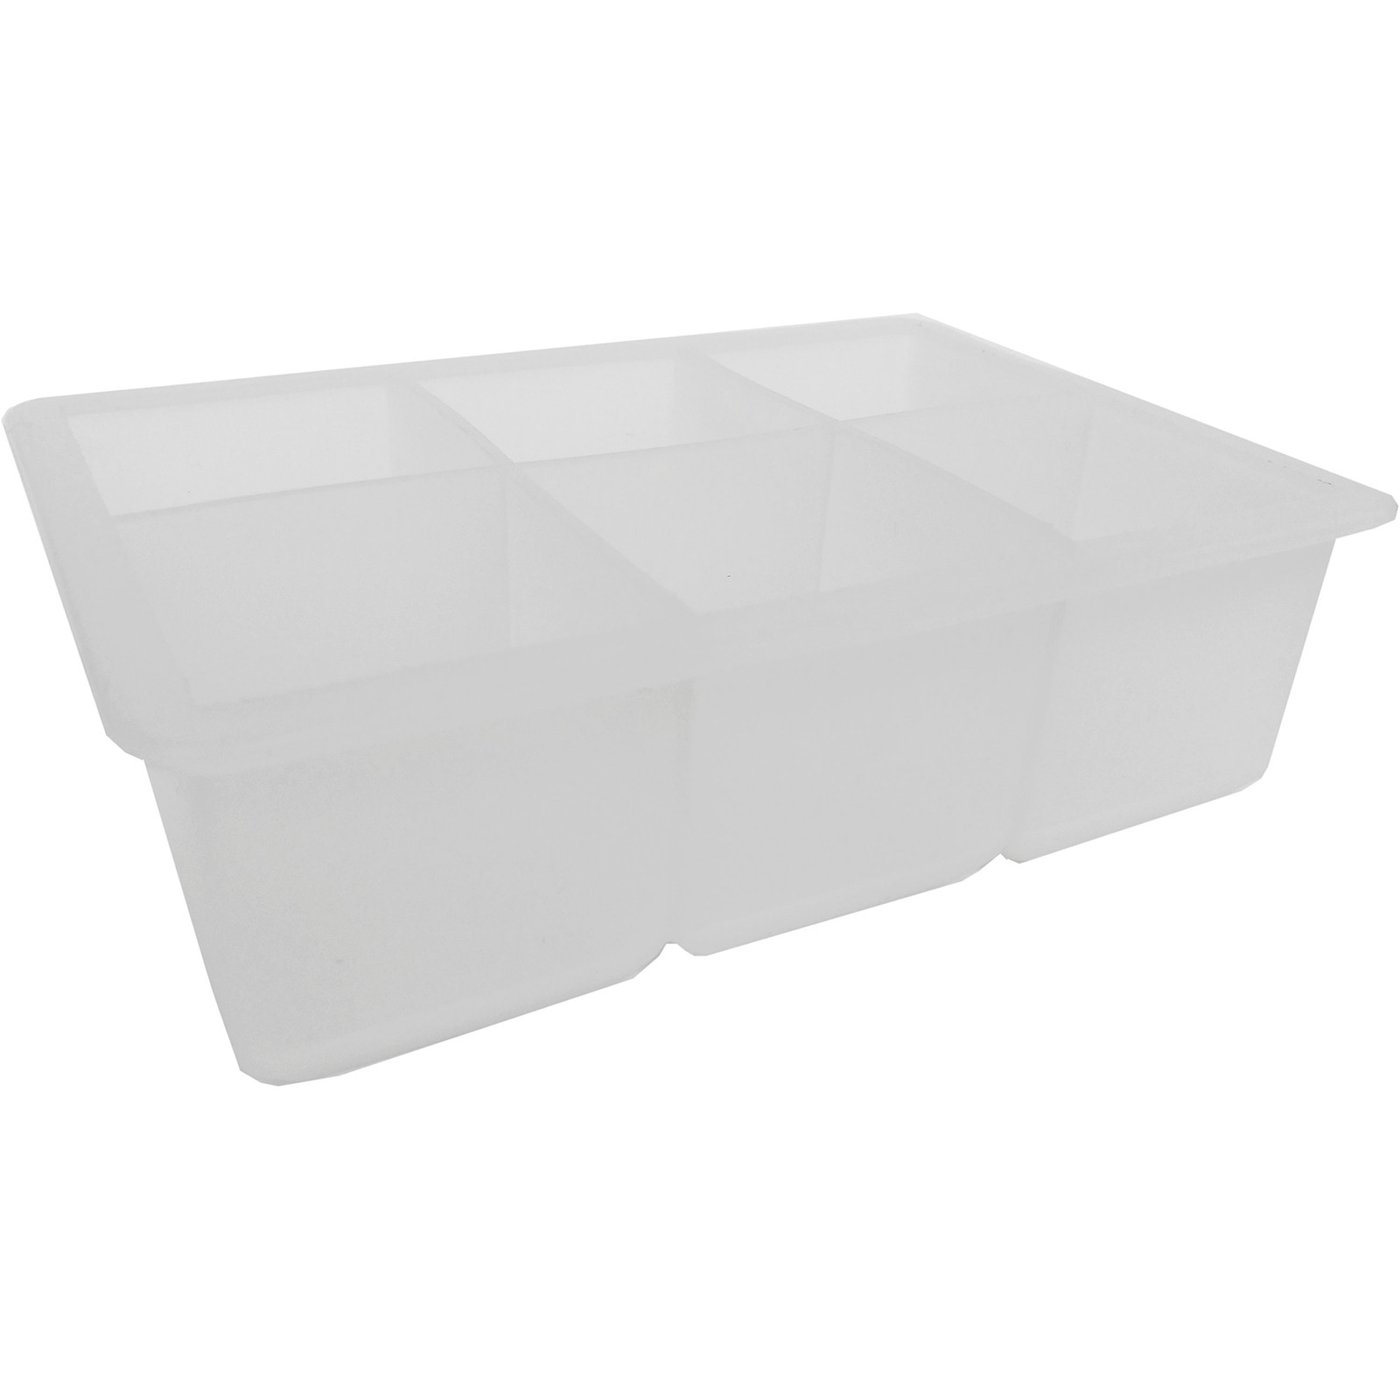 AI Tray Clear - Ice Cube Trays